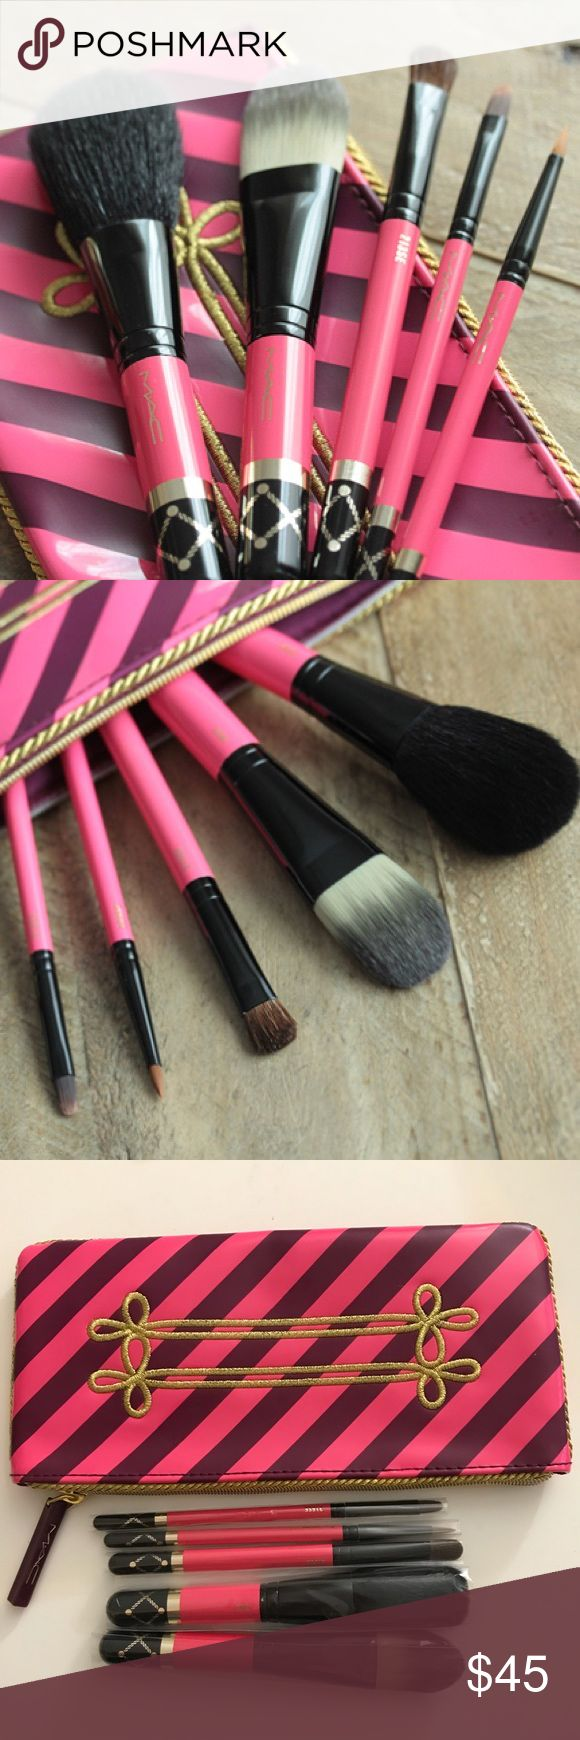 Brand new MAC Nutcracker Brush Kit with Pouch Brand new and completely authentic! ❤️ MAC Nutcracker Sweet Basic Brush Kit. Contains striped pouch, and a set of 5 make up brushes. 190SE Foundation Brush, 129SE Powder/Blush Brush, 213SE Fluff Brush, 209SE Eye Liner Brush, 316SE Lip Brush. This is a $135 value and retailed for $53 before it was discontinued. 🤗 Free shipping on bundles of 3 or more! 🎉 MAC Cosmetics Makeup Brushes & Tools